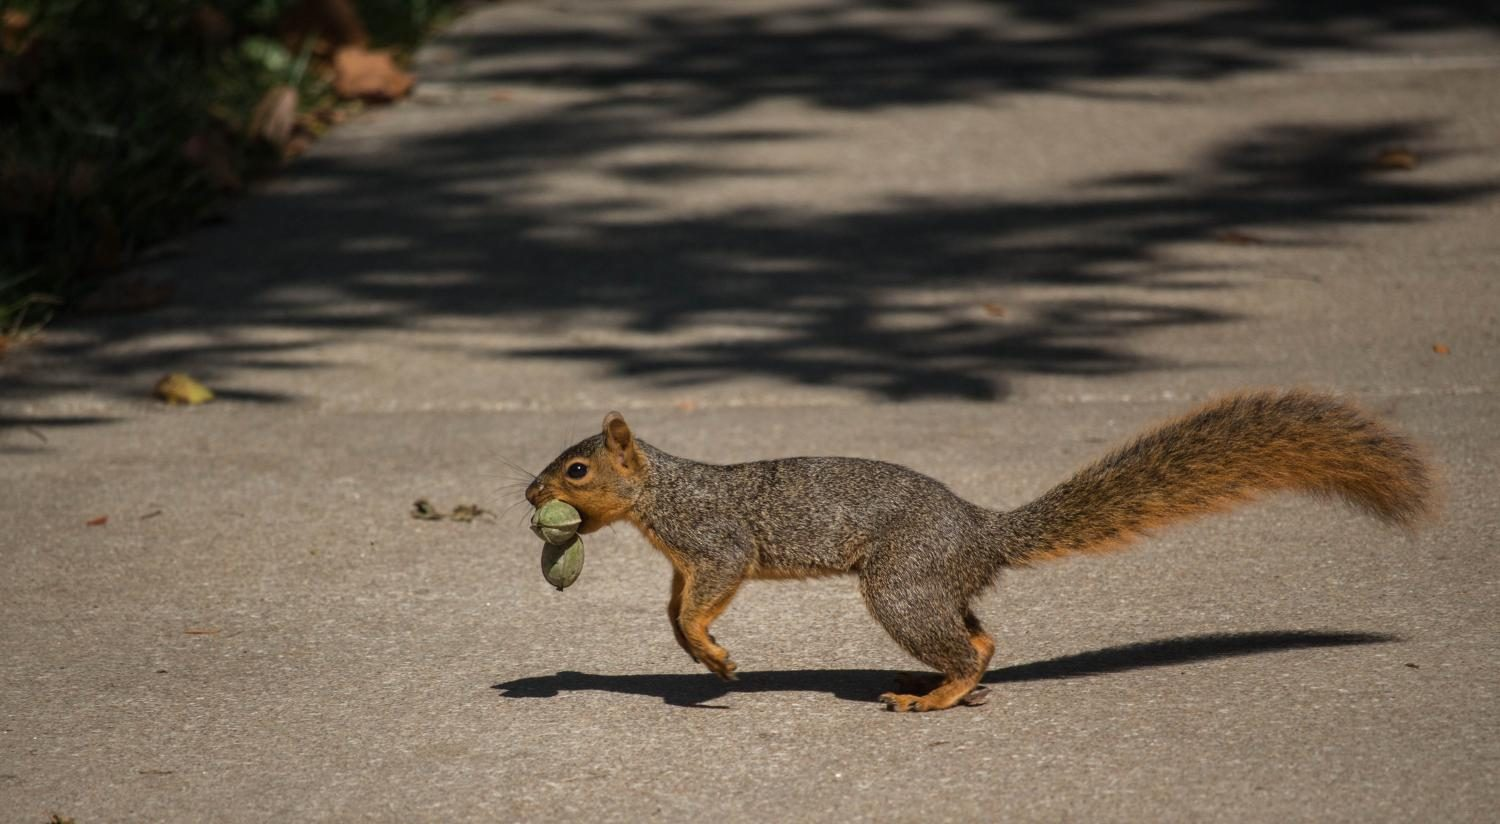 A+squirrel+scampers+across+campus+with+its+treasures.+Several+squirrels+populate+campus+and+can+always+be+seen+when+walking+to+class.+They%27ve+been+named+the+Baker+Squirrels+and+even+have+their+own+Twitter+account.